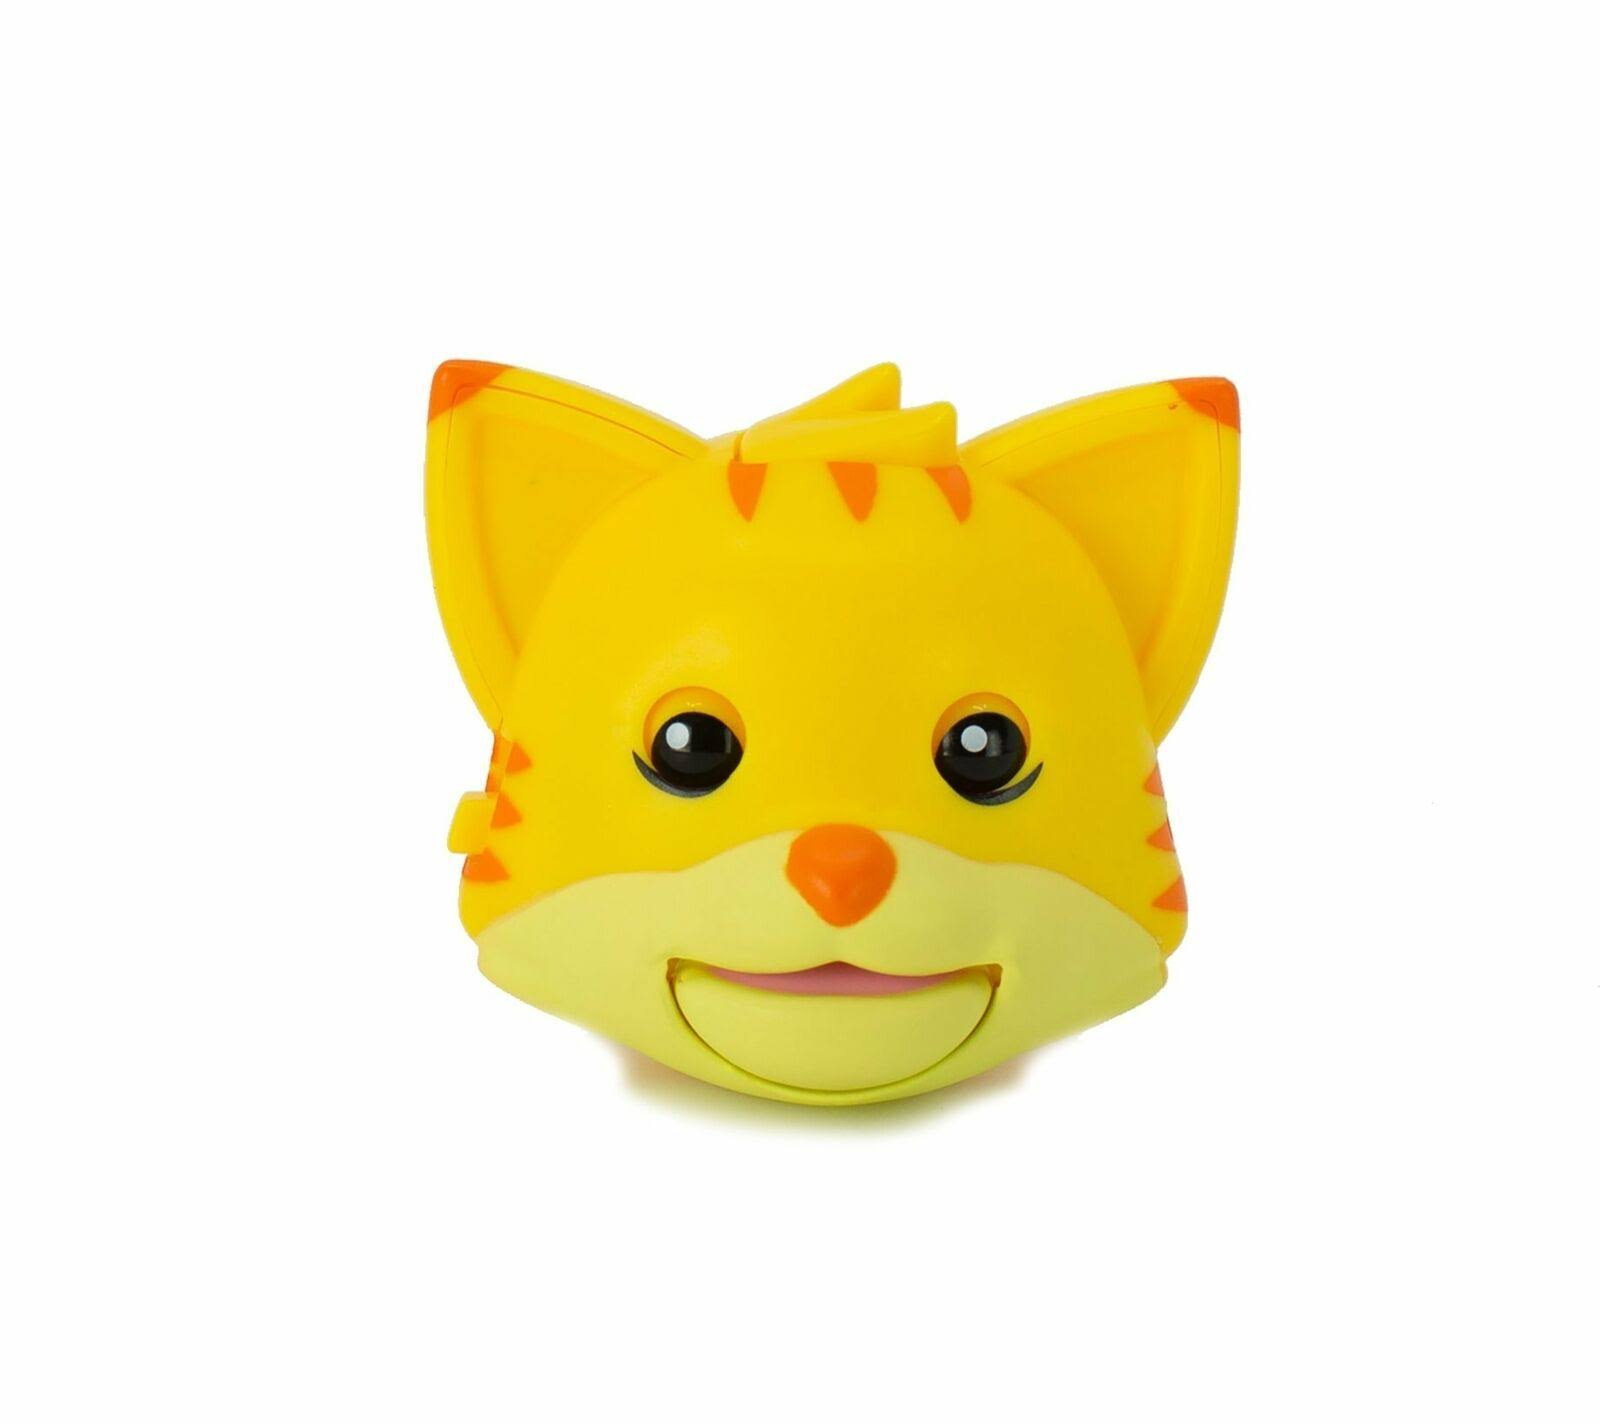 Mojimoto - Animated Talking Mojis, Kitty Cat